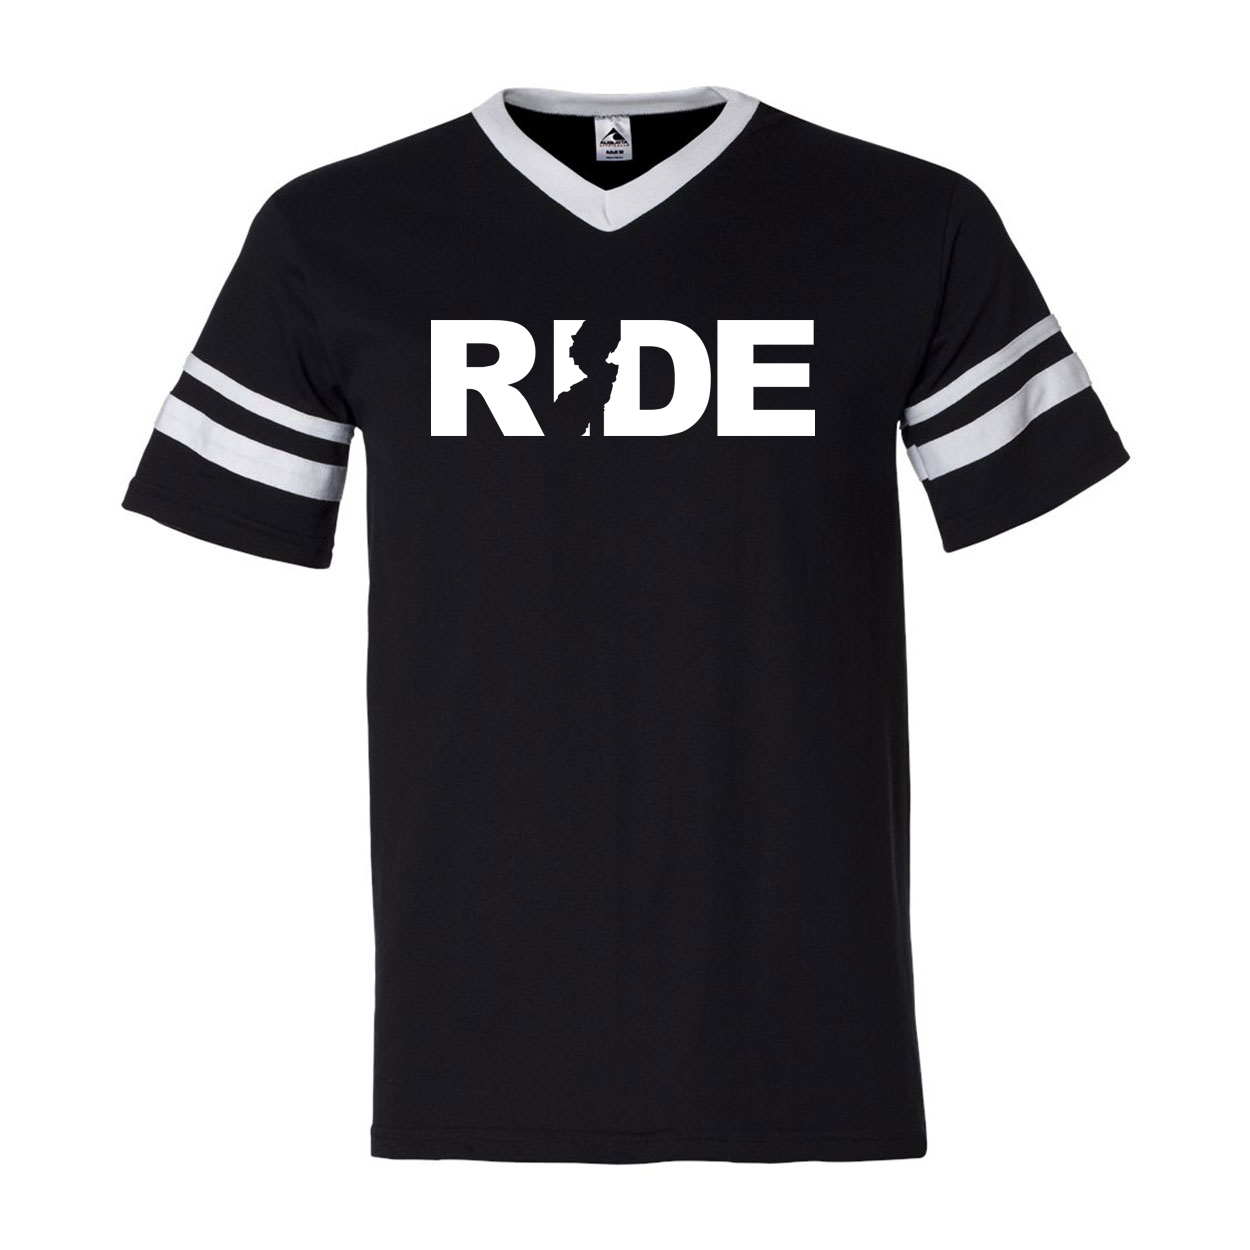 Ride New Jersey Classic Premium Striped Jersey T-Shirt Black/White (White Logo)